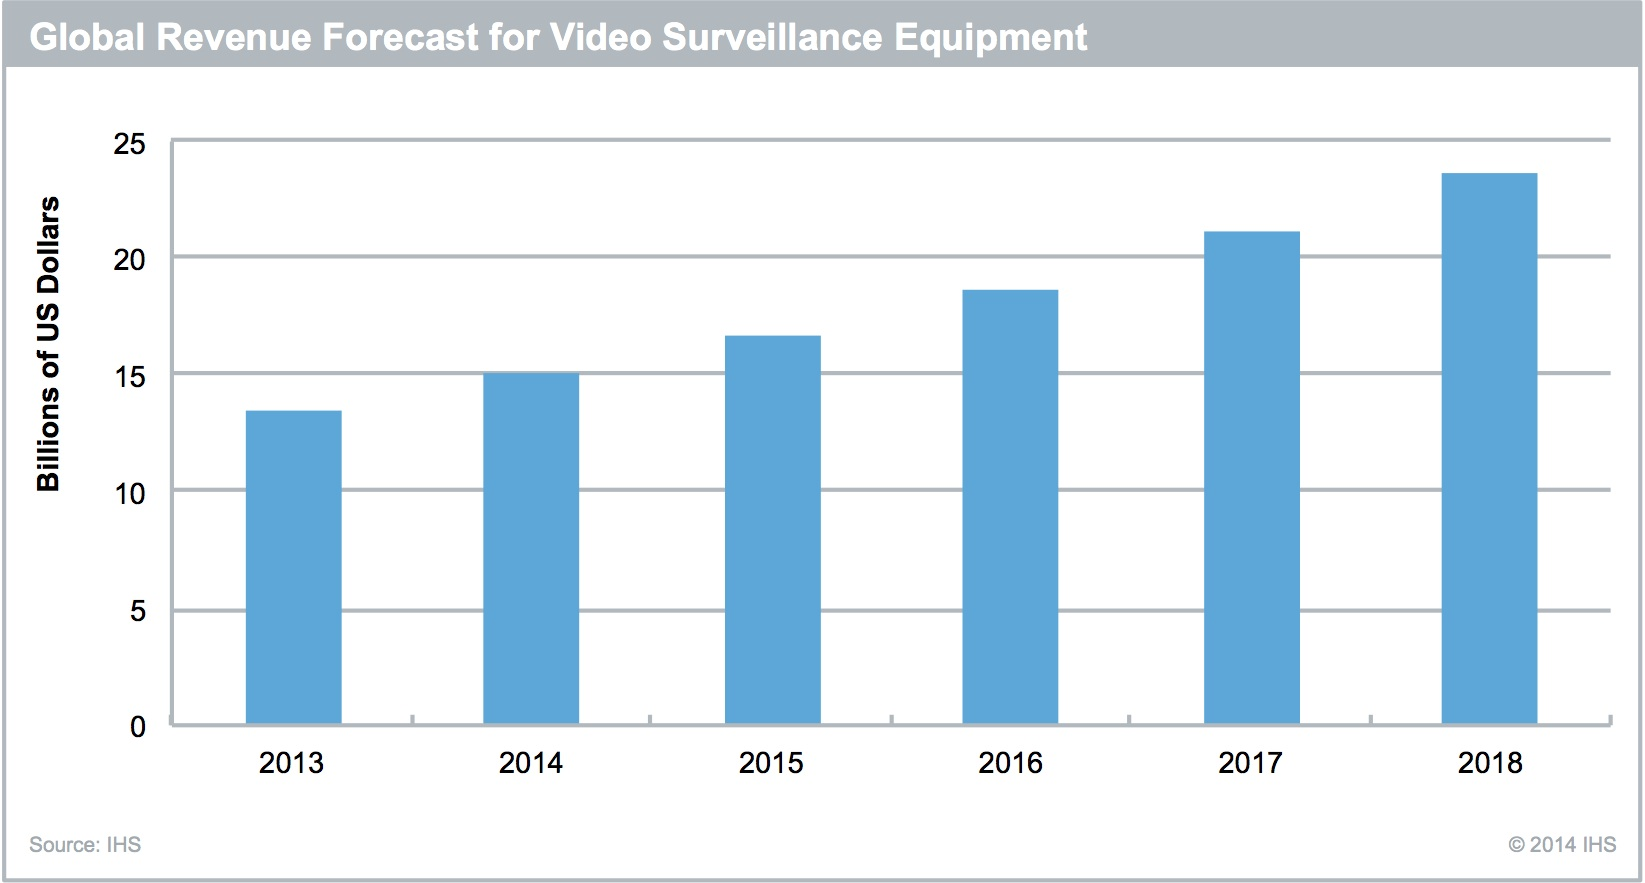 Video surveillance growth to exceed 10% in 2015